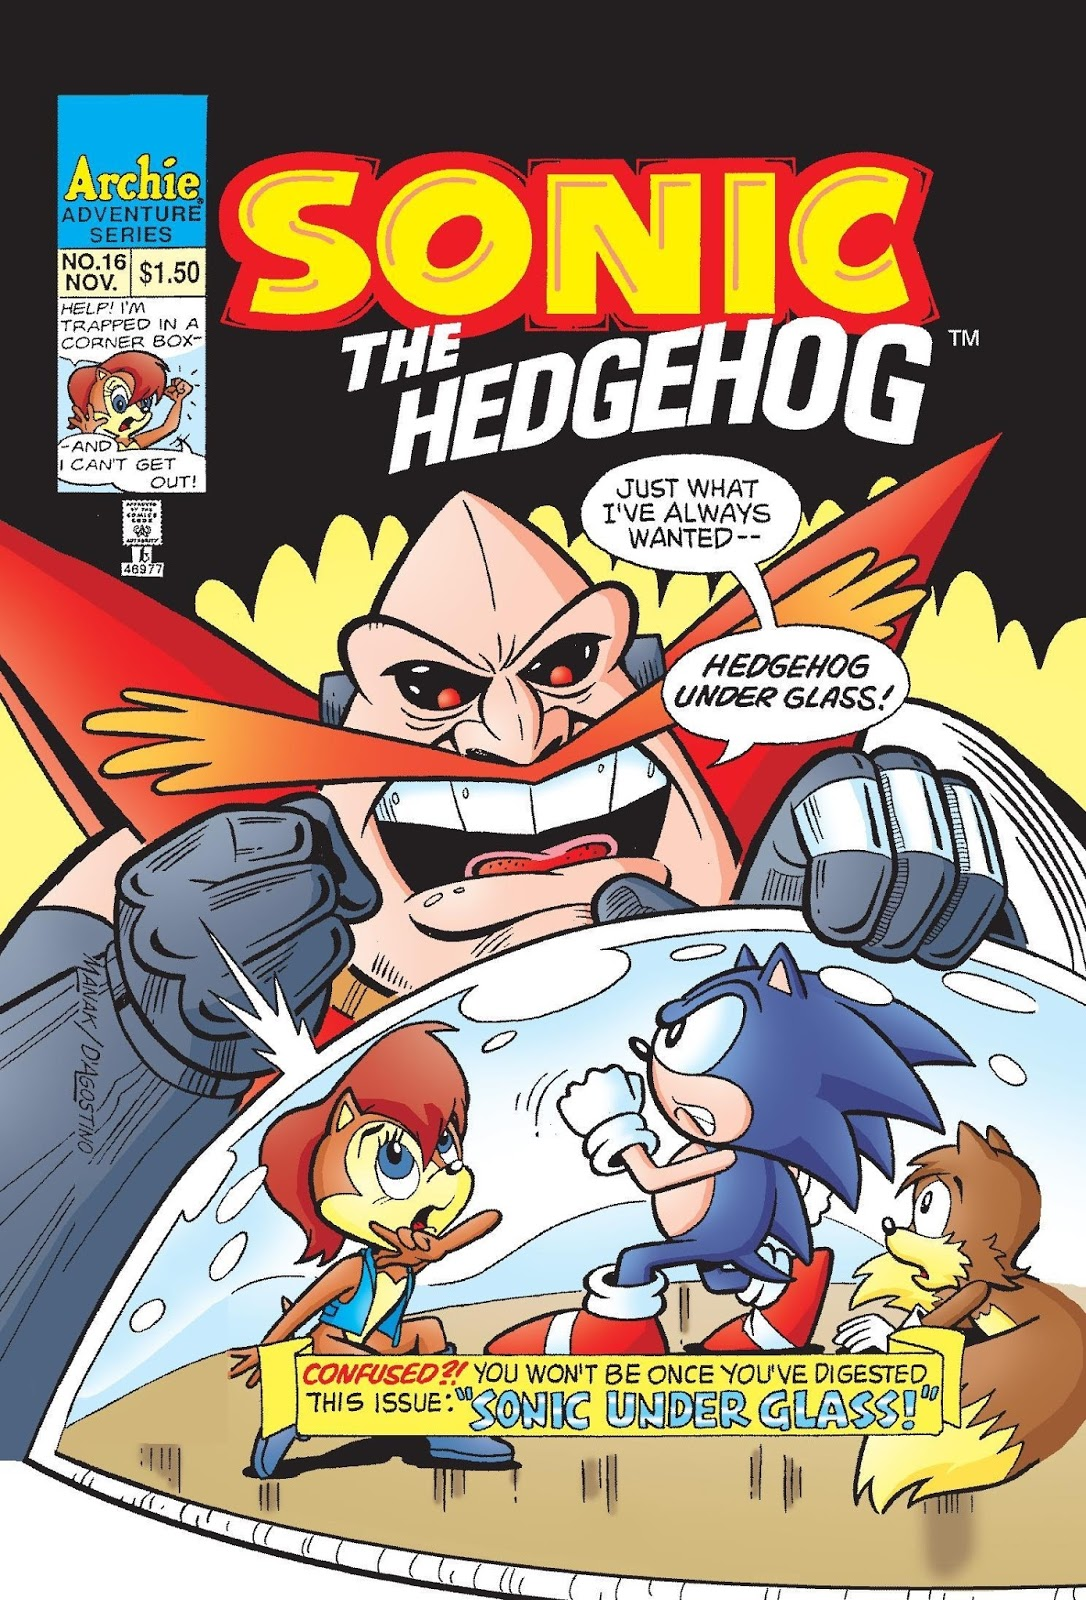 hedgehogs cant swim sonic the hedgehog issue 16